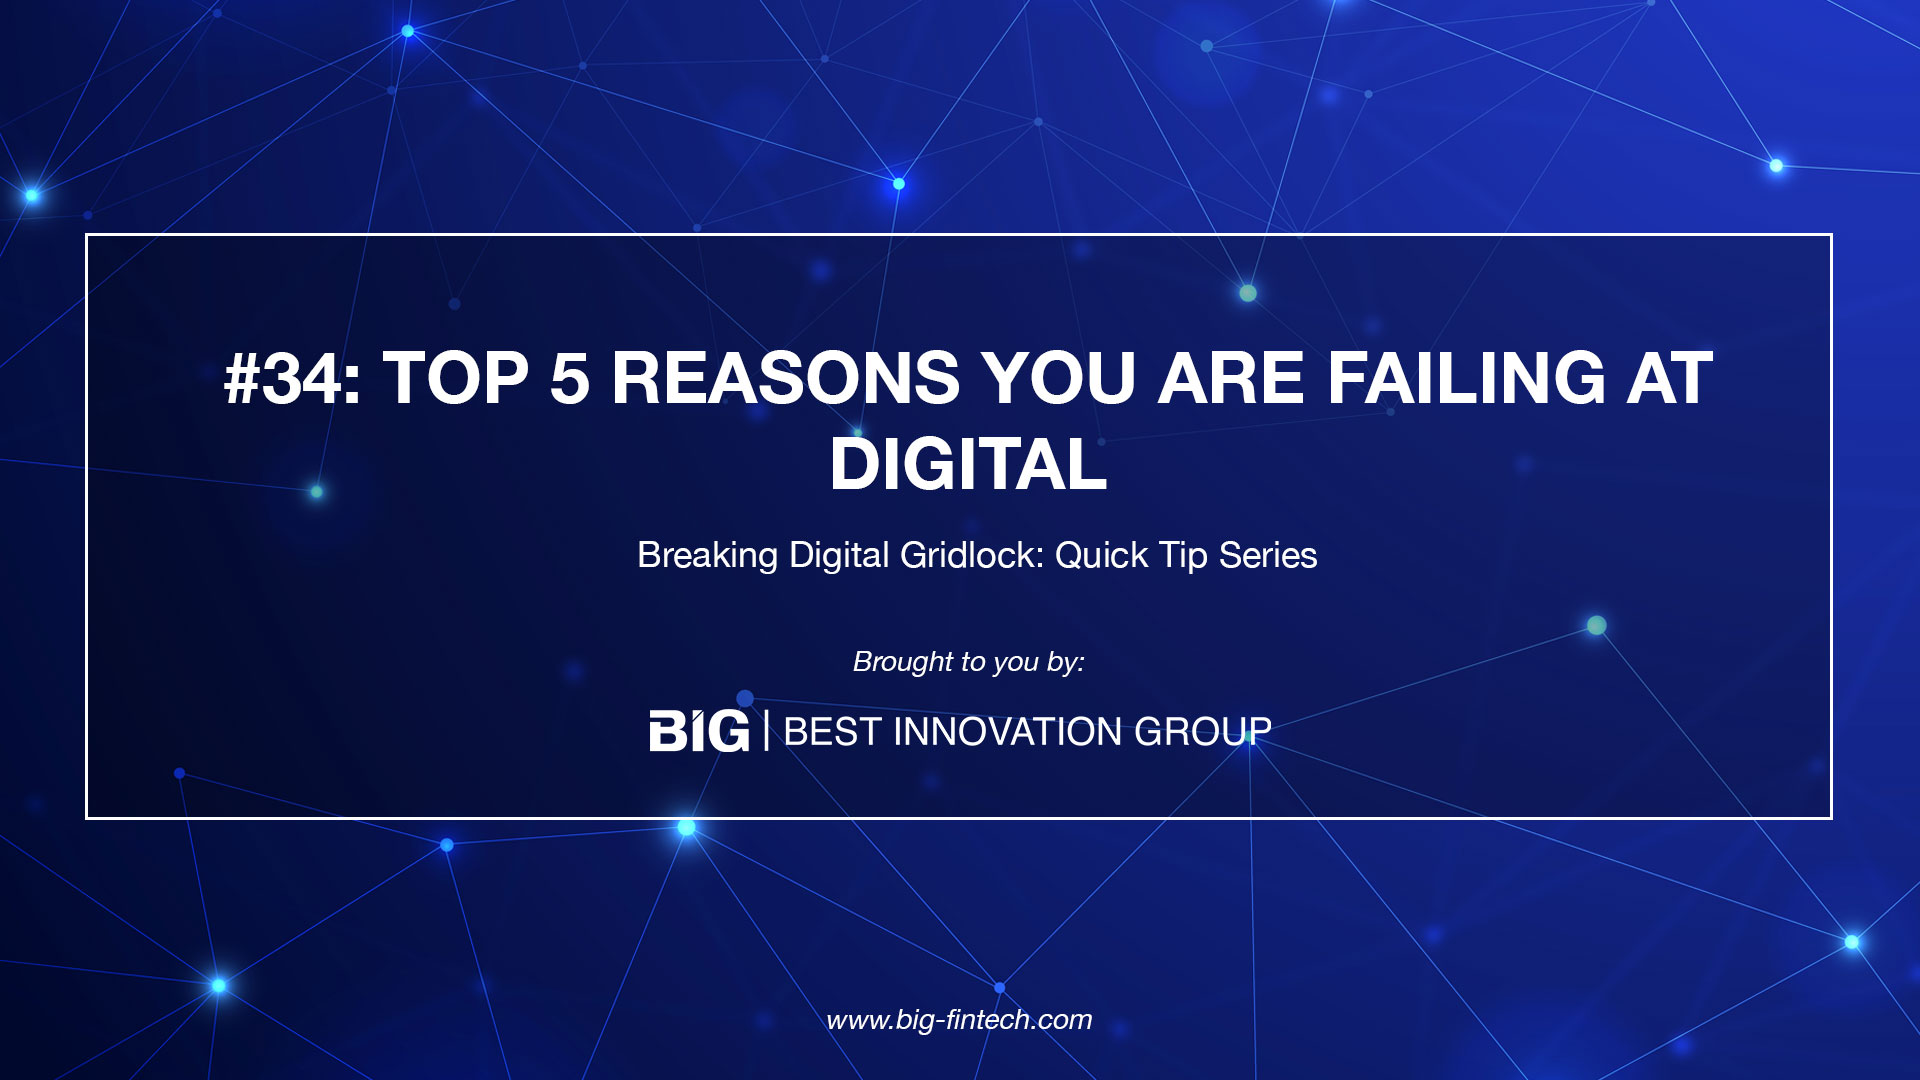 Breaking Weekly Digital Gridlock #34: Top 5 Reasons You Are Failing at Digital